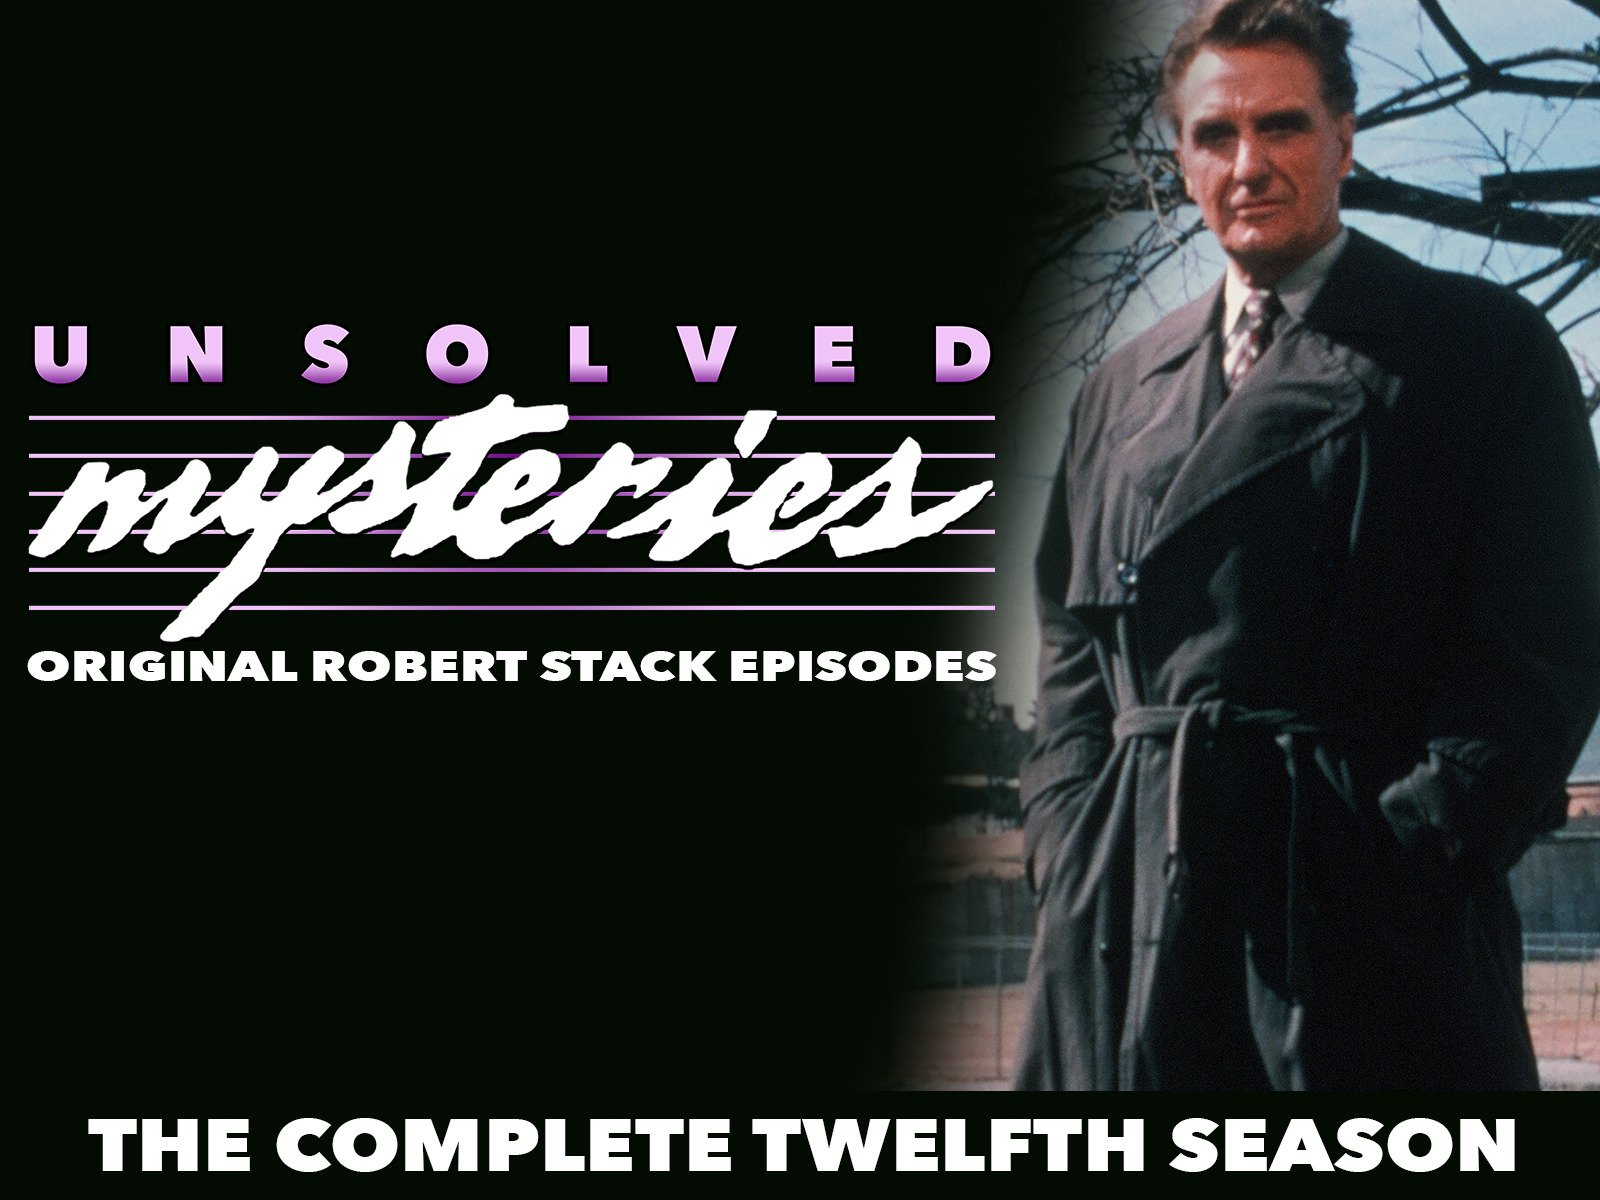 Unsolved Mysteries: Original Robert Stack Episodes - Season 12